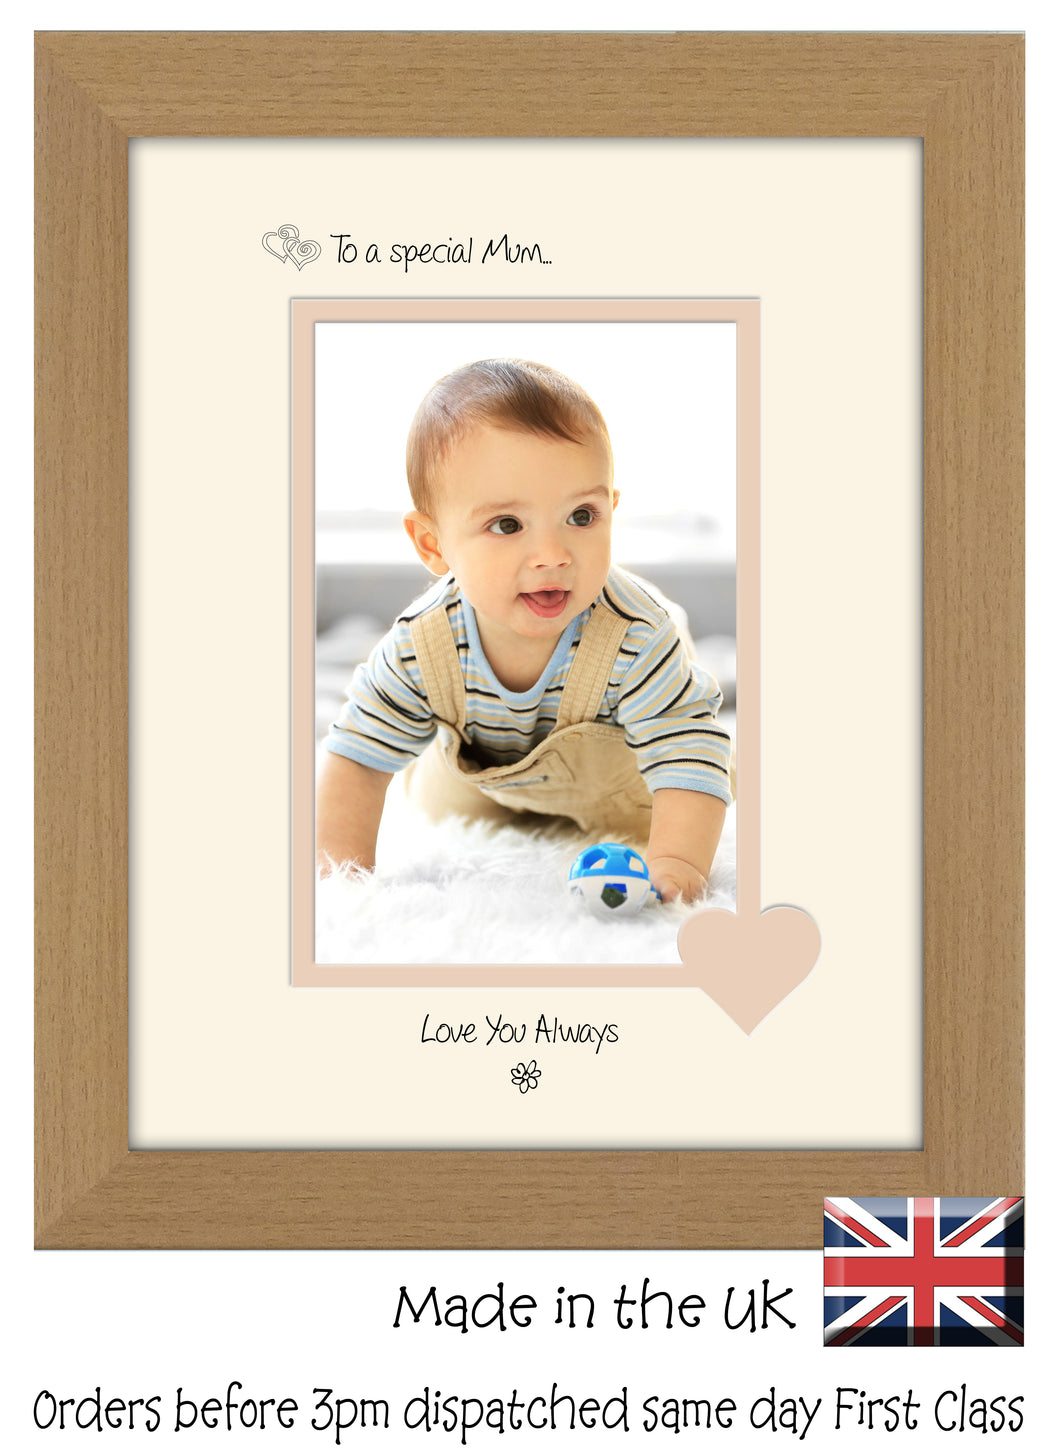 Mum Photo Frame - To a Special Mum... Love you Always Portrait photo frame 6